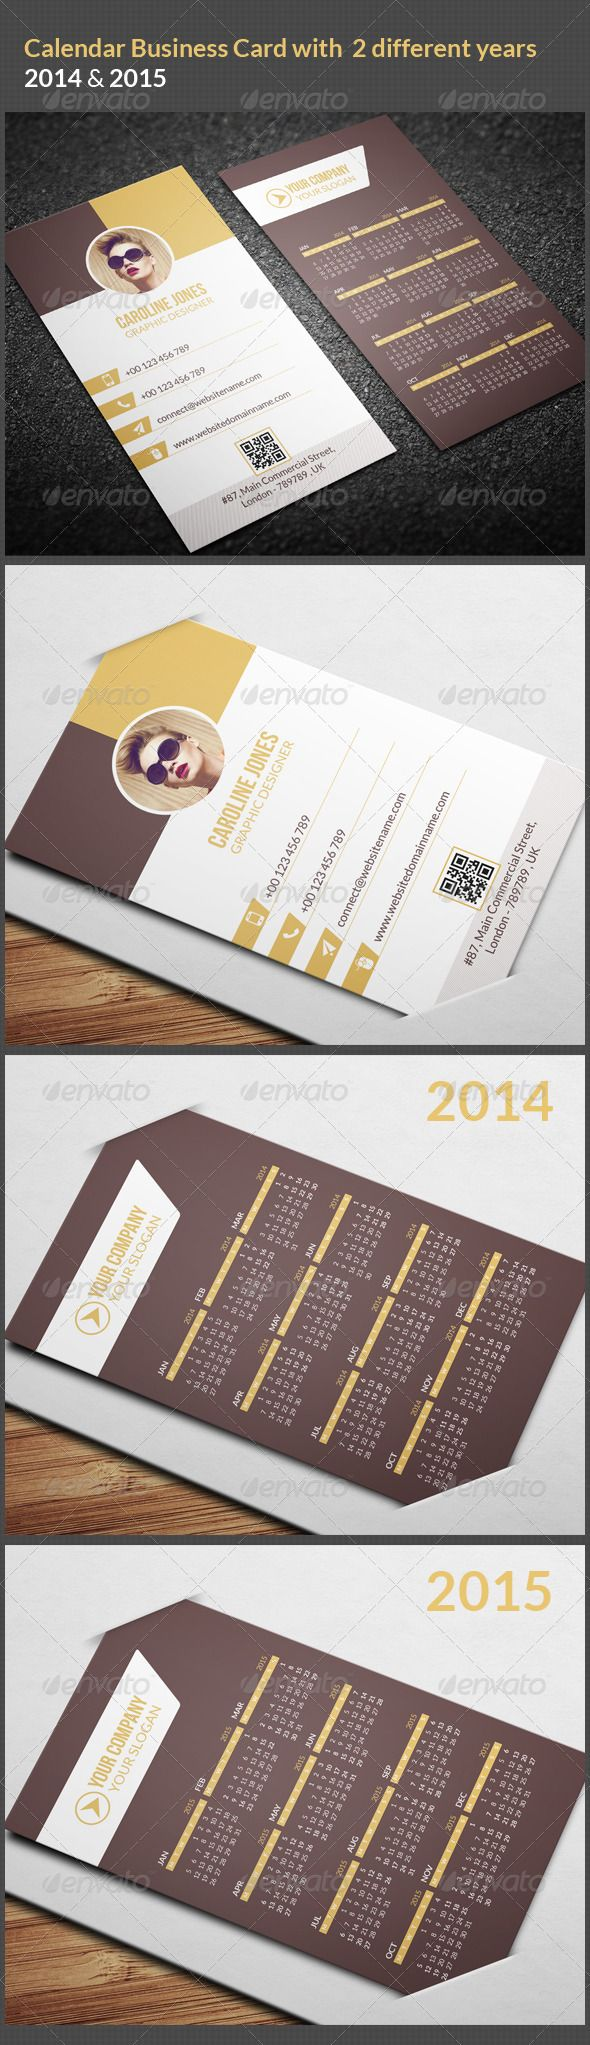 60 best creative business cards images on pinterest business cards calendar business card 2014 2015 reheart Images